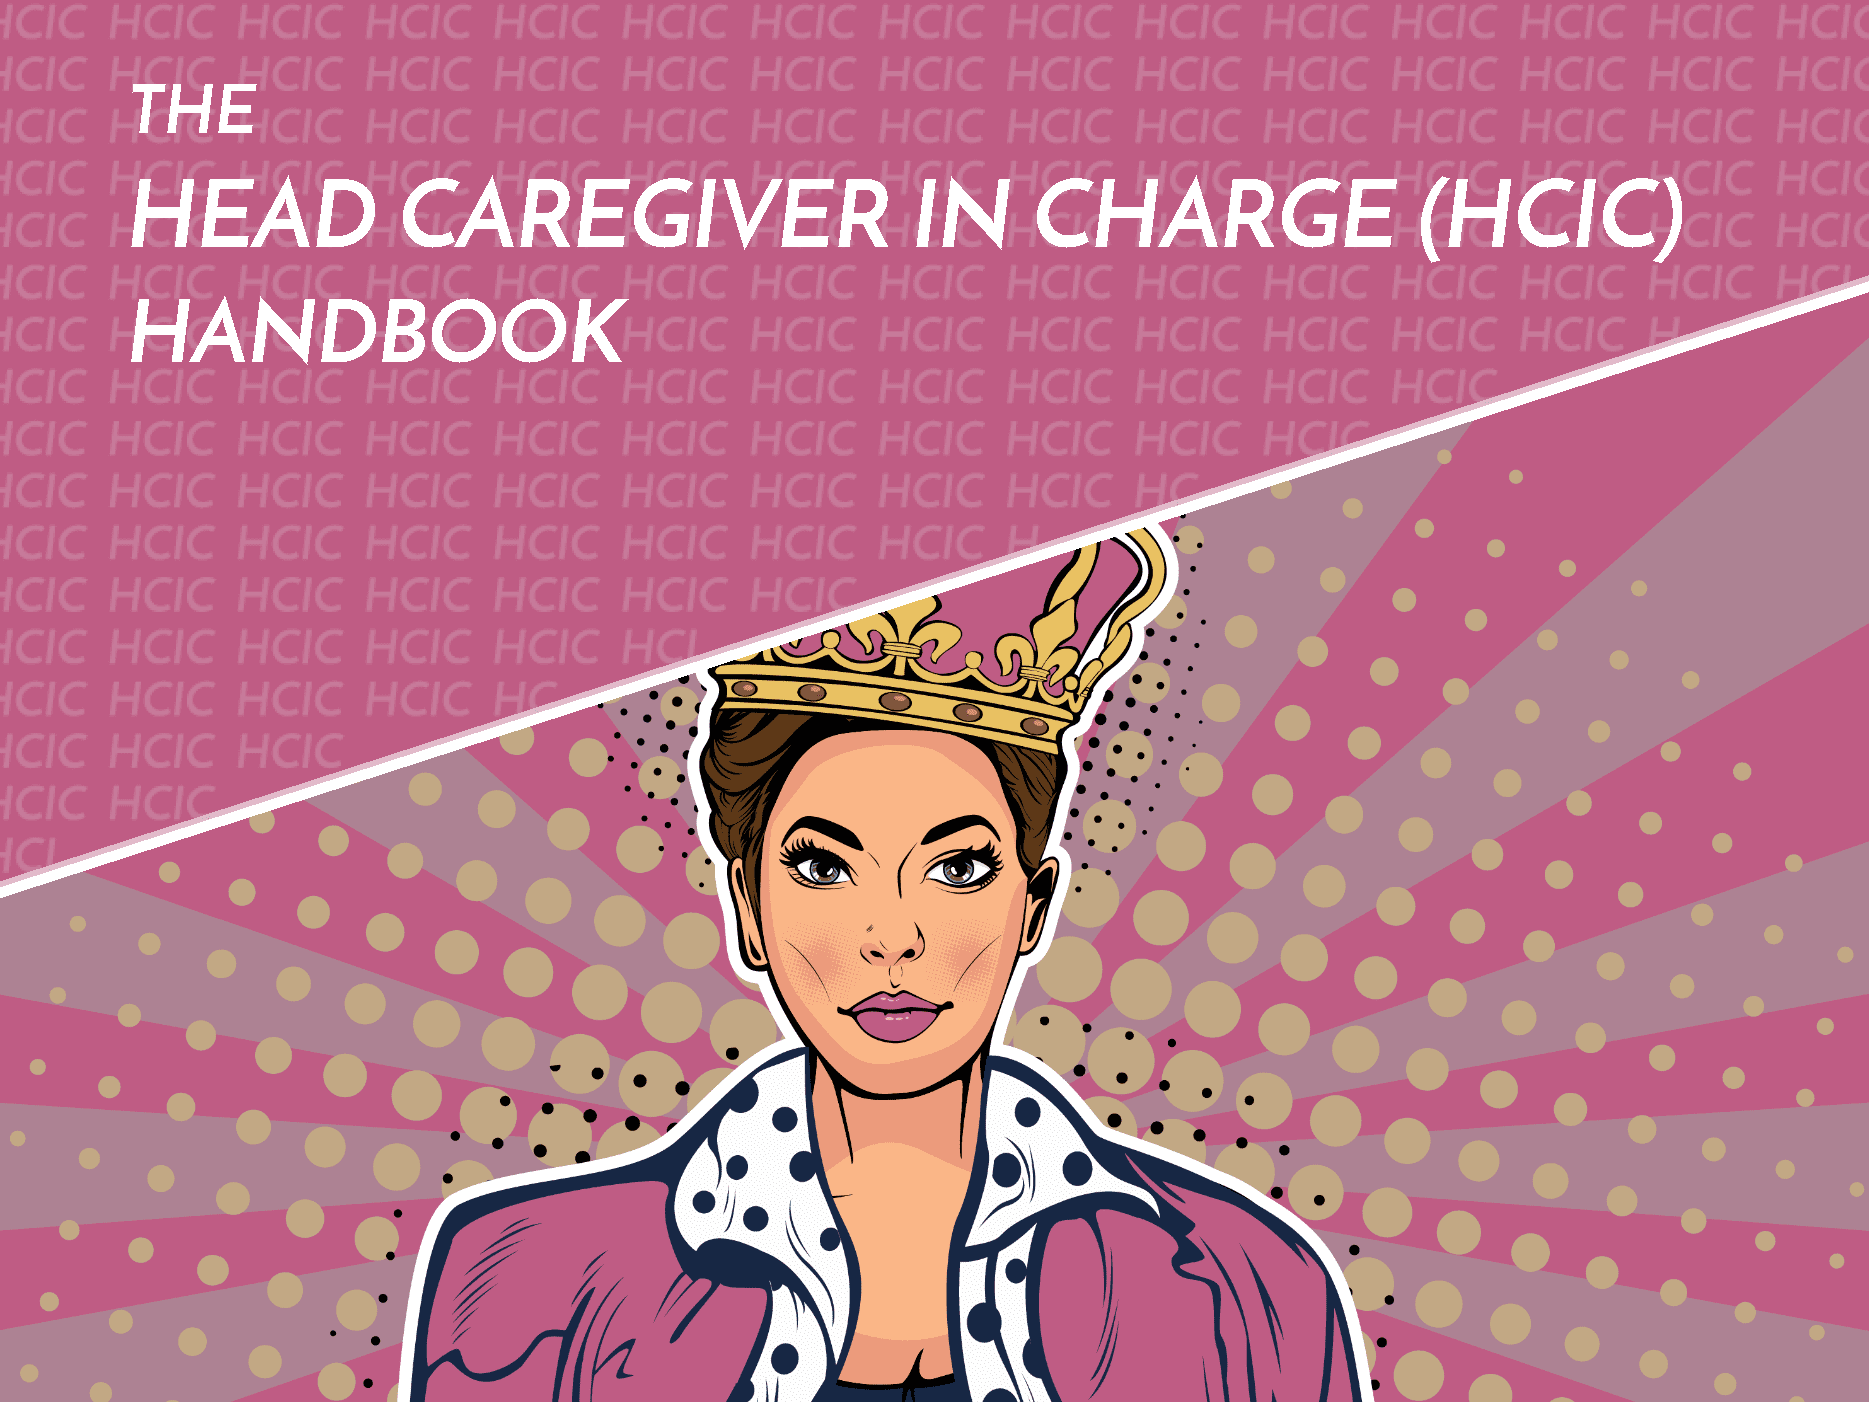 Head Caregiver in Charge HCIC Complete Handbook cover preview